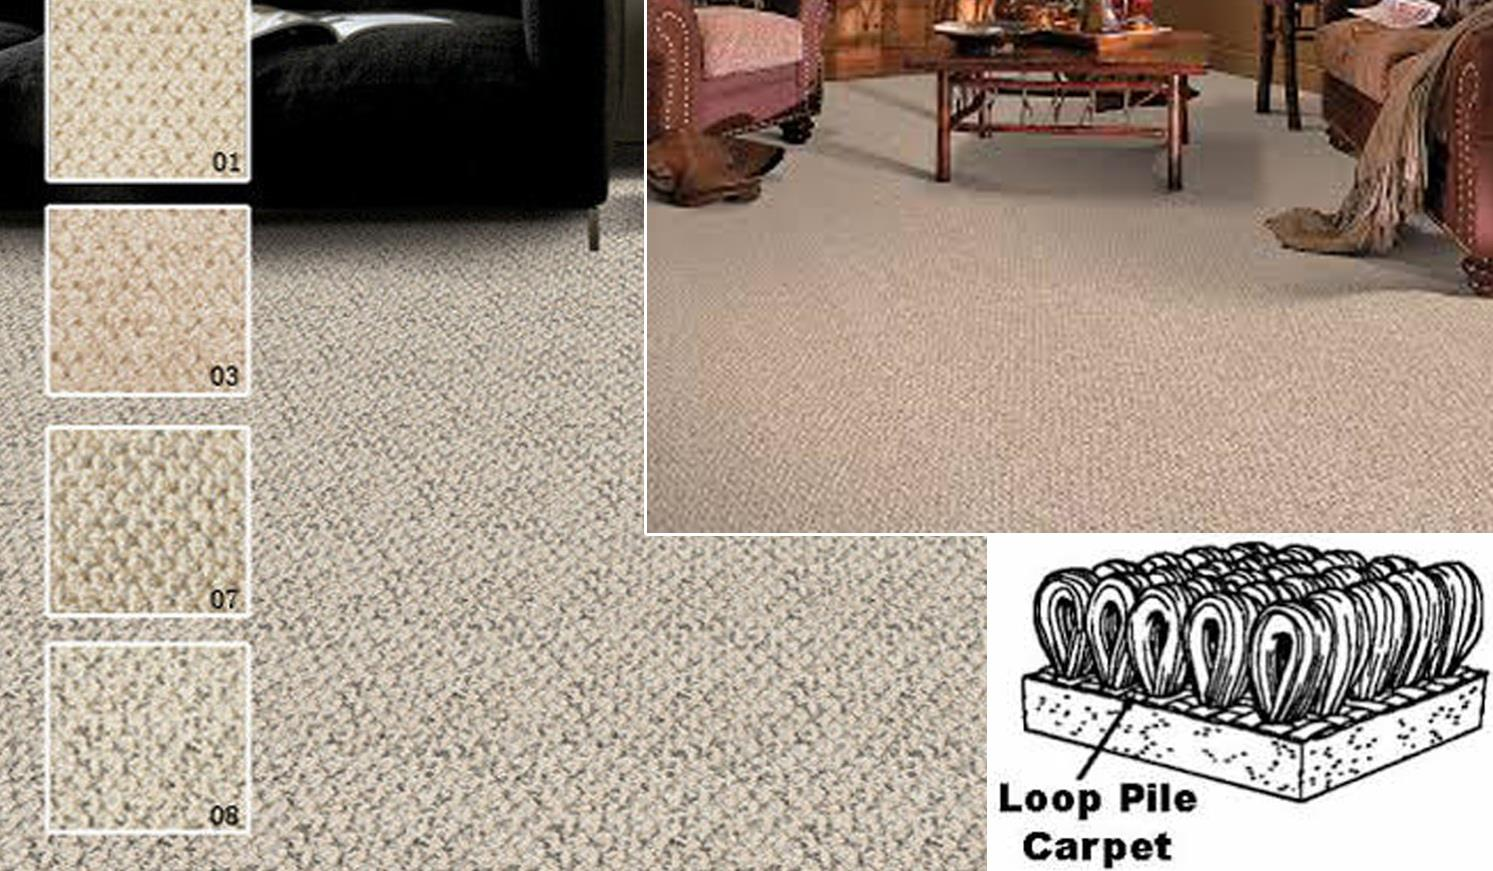 LOOP PILE CARPET COLLECTION BEST AND CHEAP IN MALAYSIA